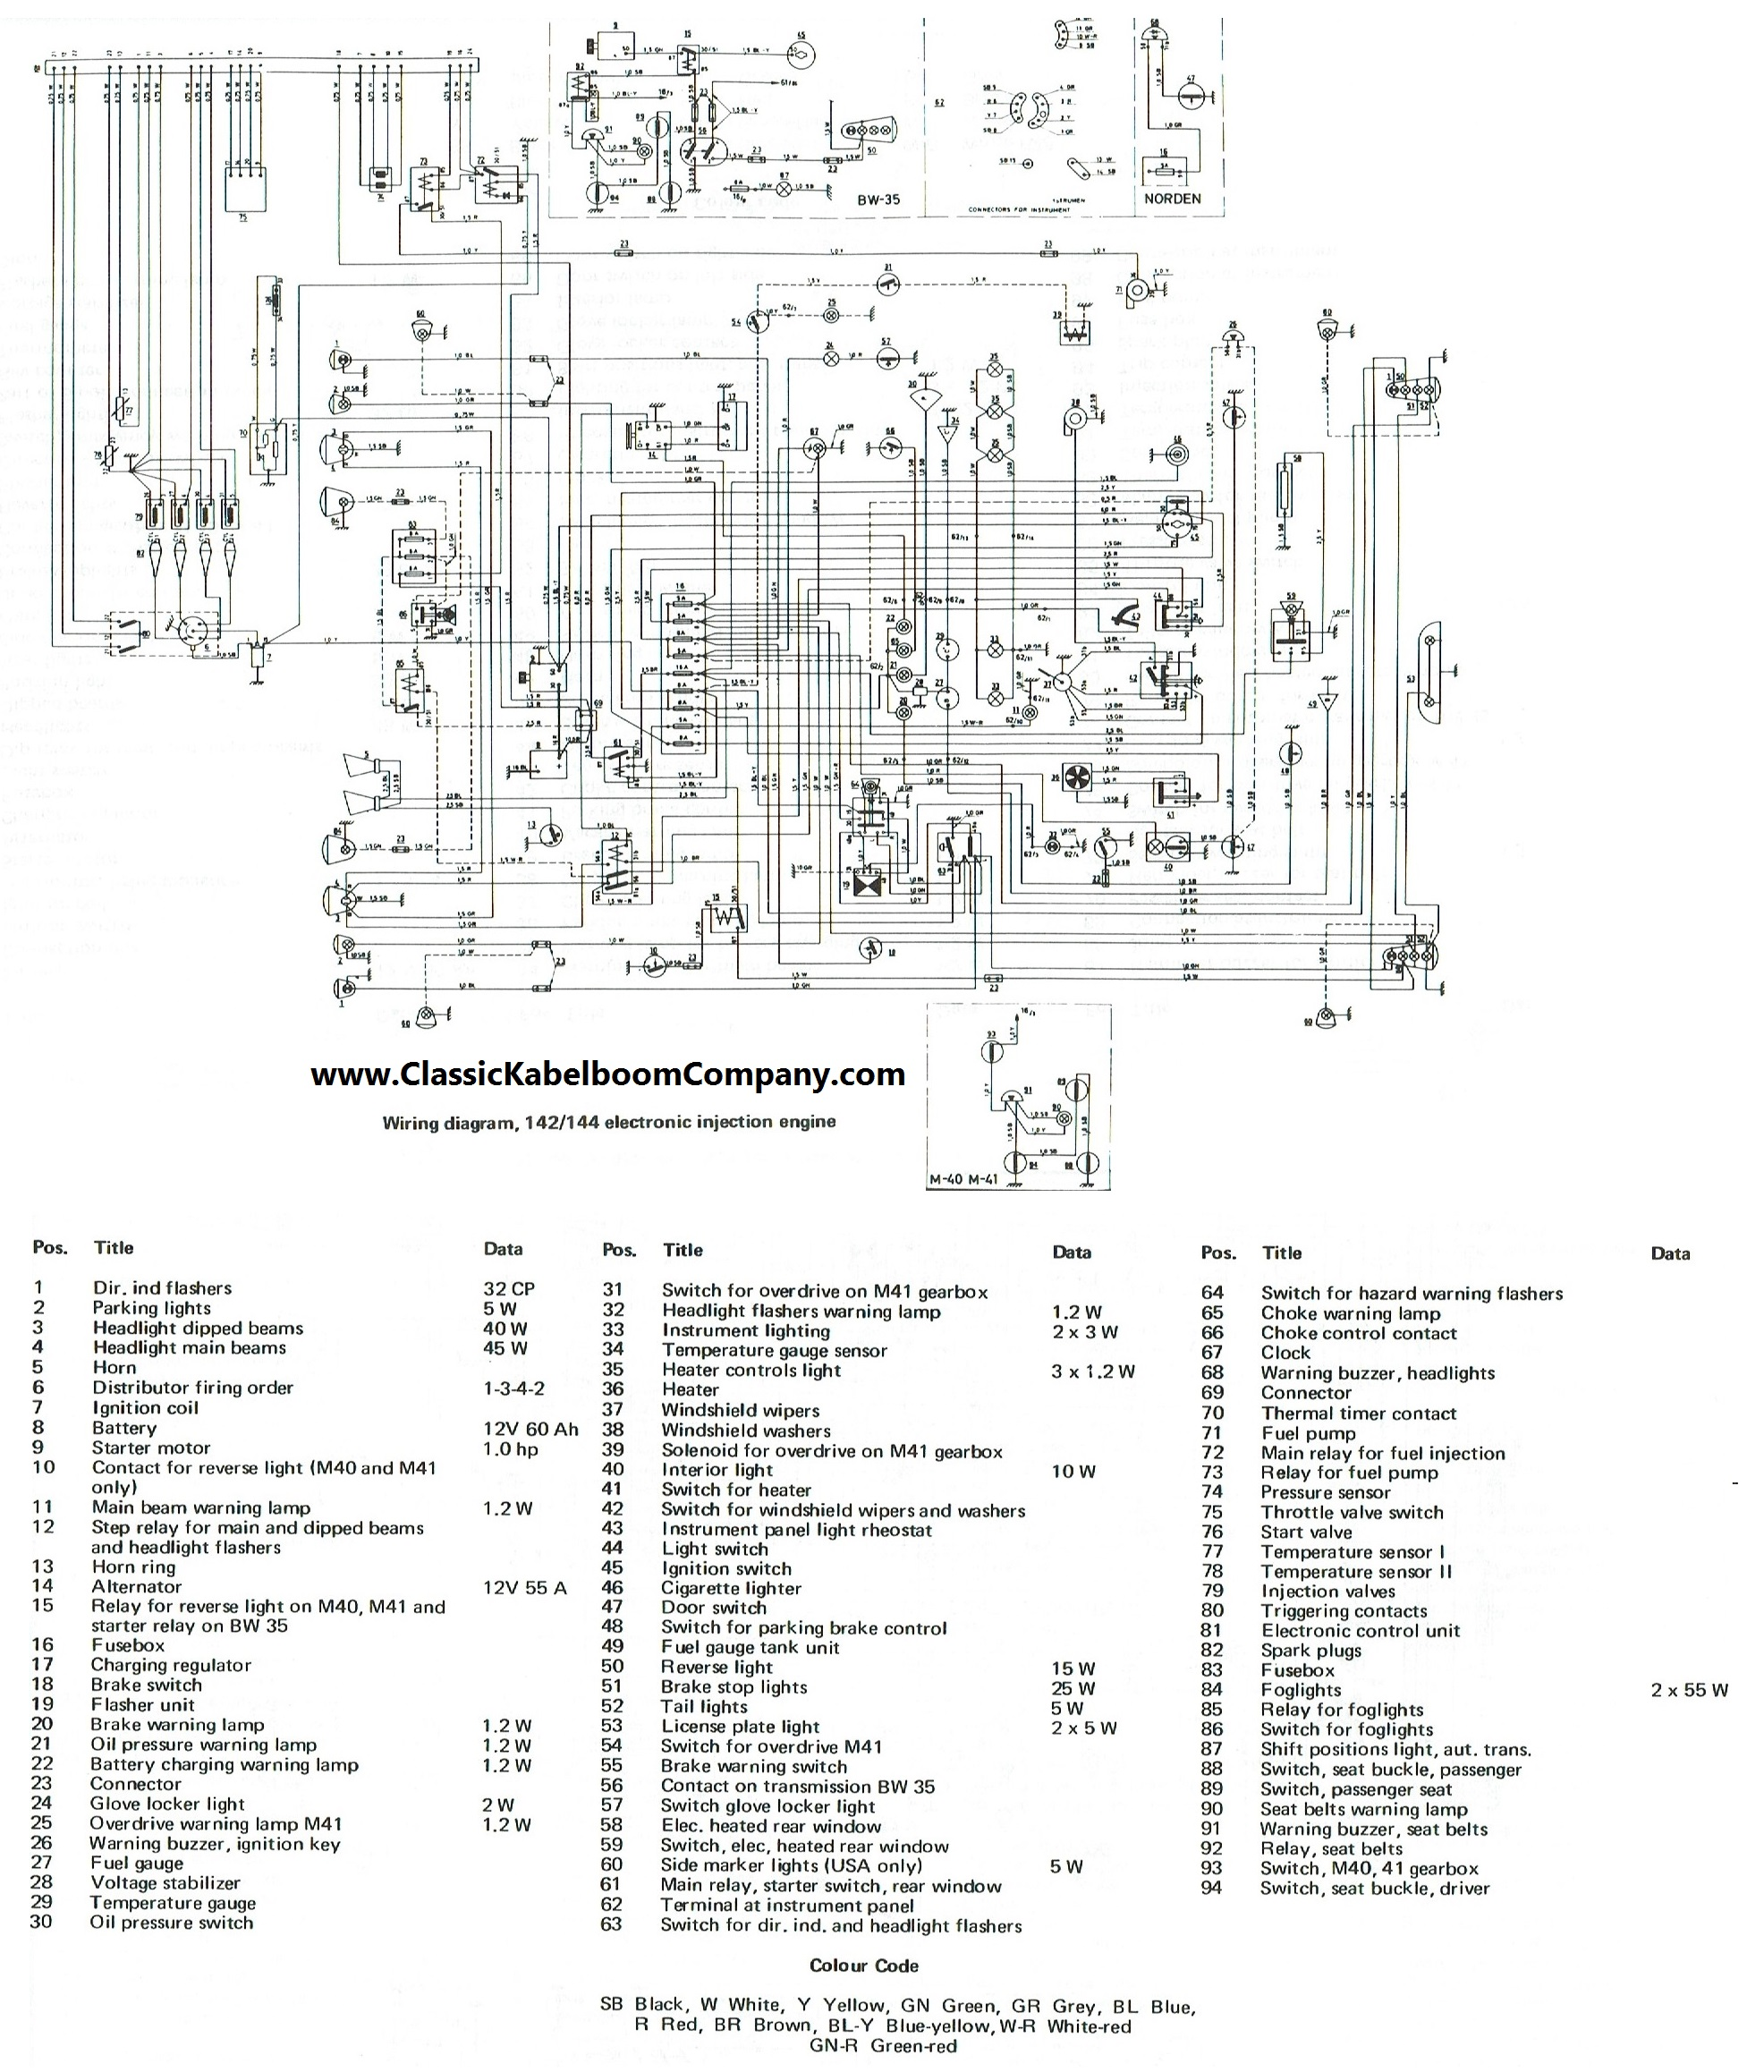 1972 Volvo P1800 Wiring Diagram besides 02 Buick Regal Transmission Diagram Wiring Schematic besides 0713 009 further Replace Rear Trailing Arm Bushings 1998 Awd also Engine Parts List 1. on volvo amazon wiring diagram